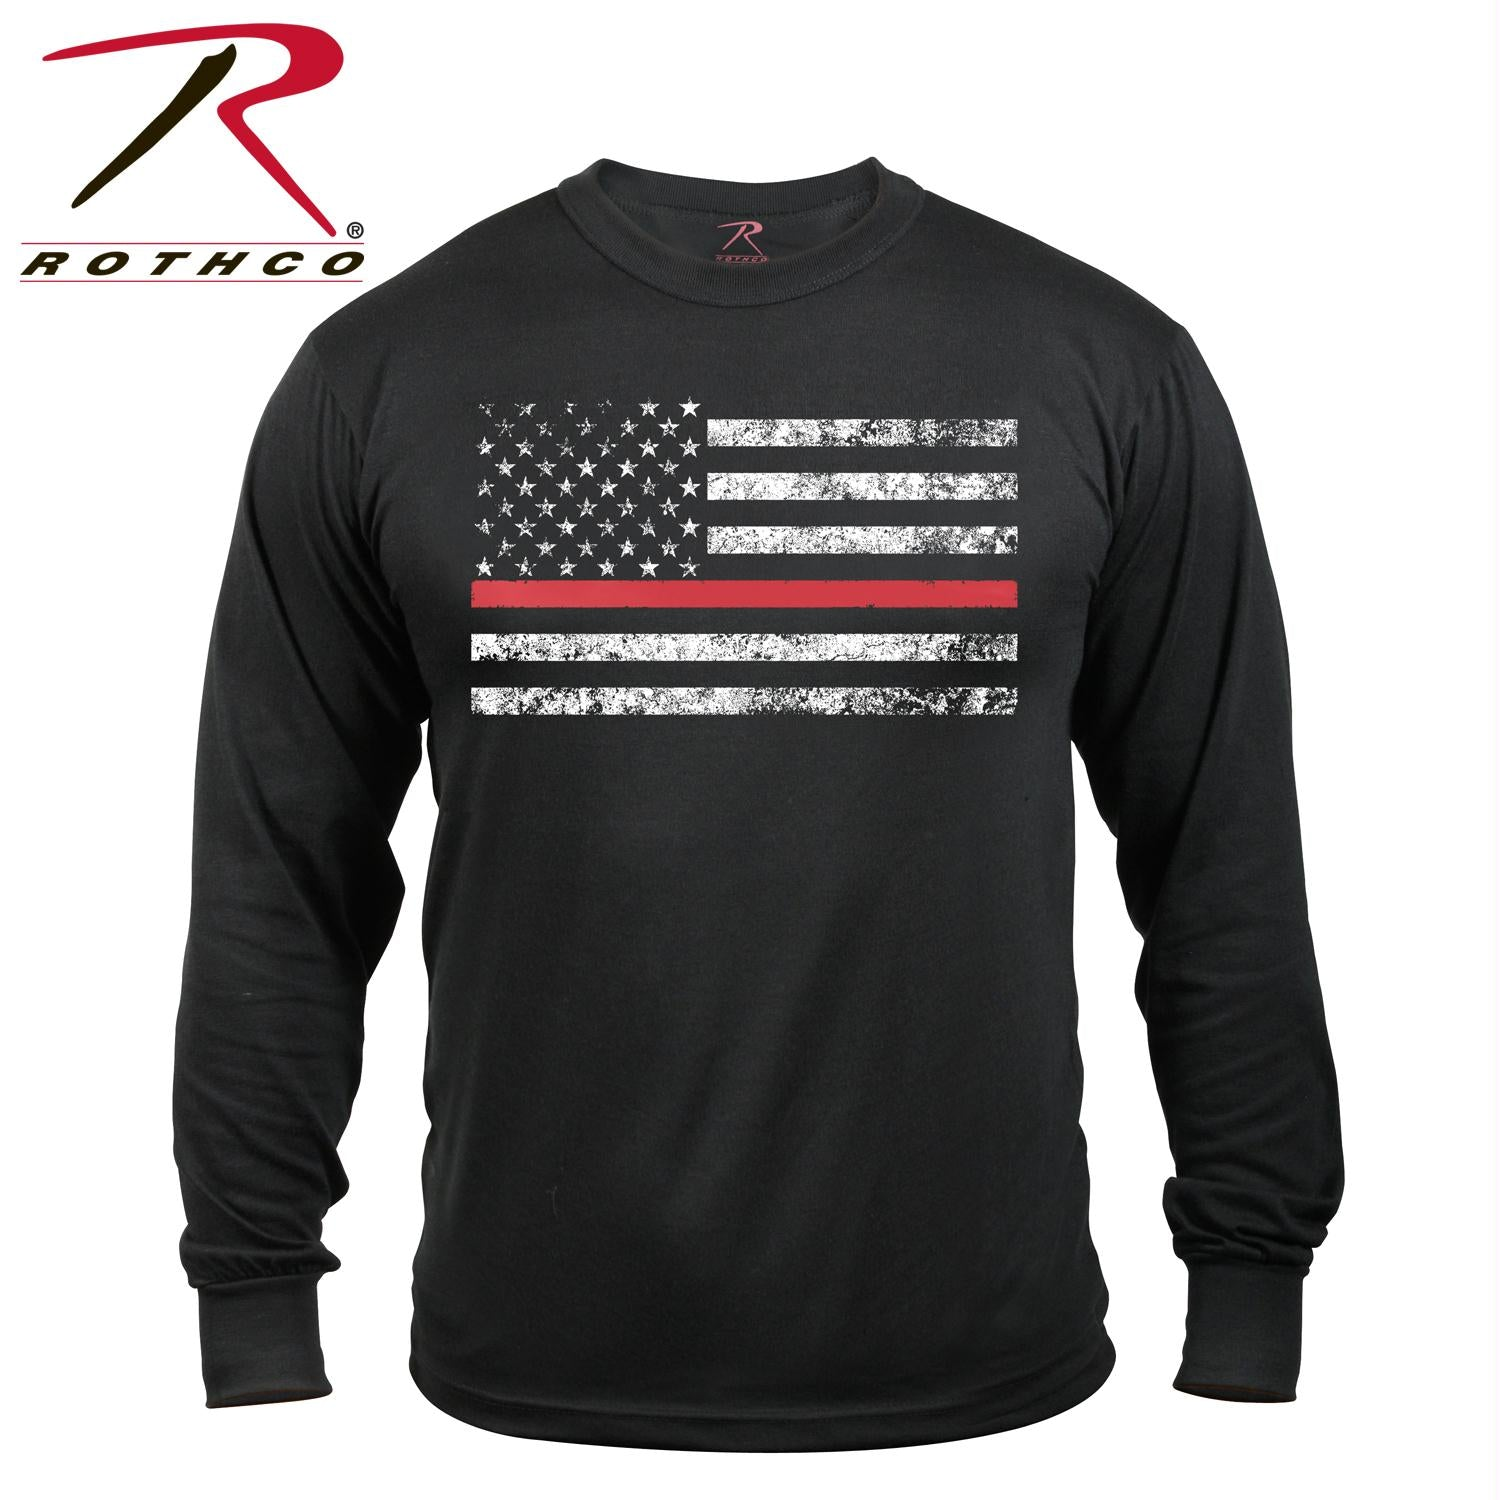 Rothco Thin Red Line Long Sleeve T-shirt - Black / S